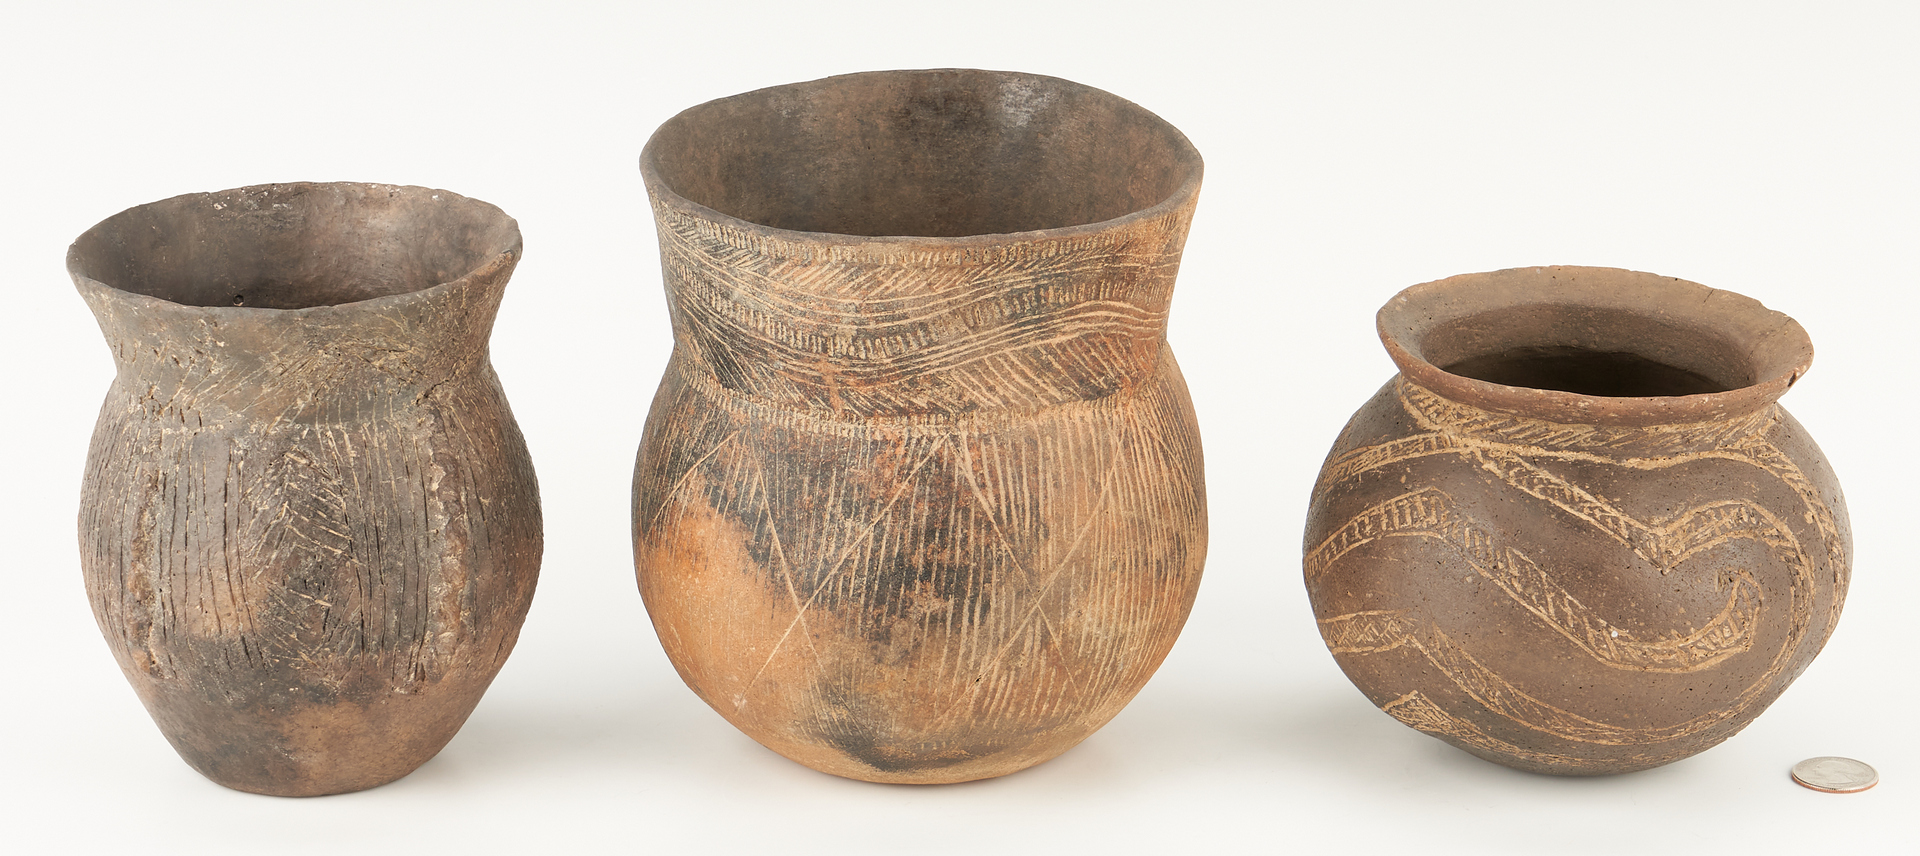 Lot 1118: 3 Mississippian Caddo Incised & Carved Jars